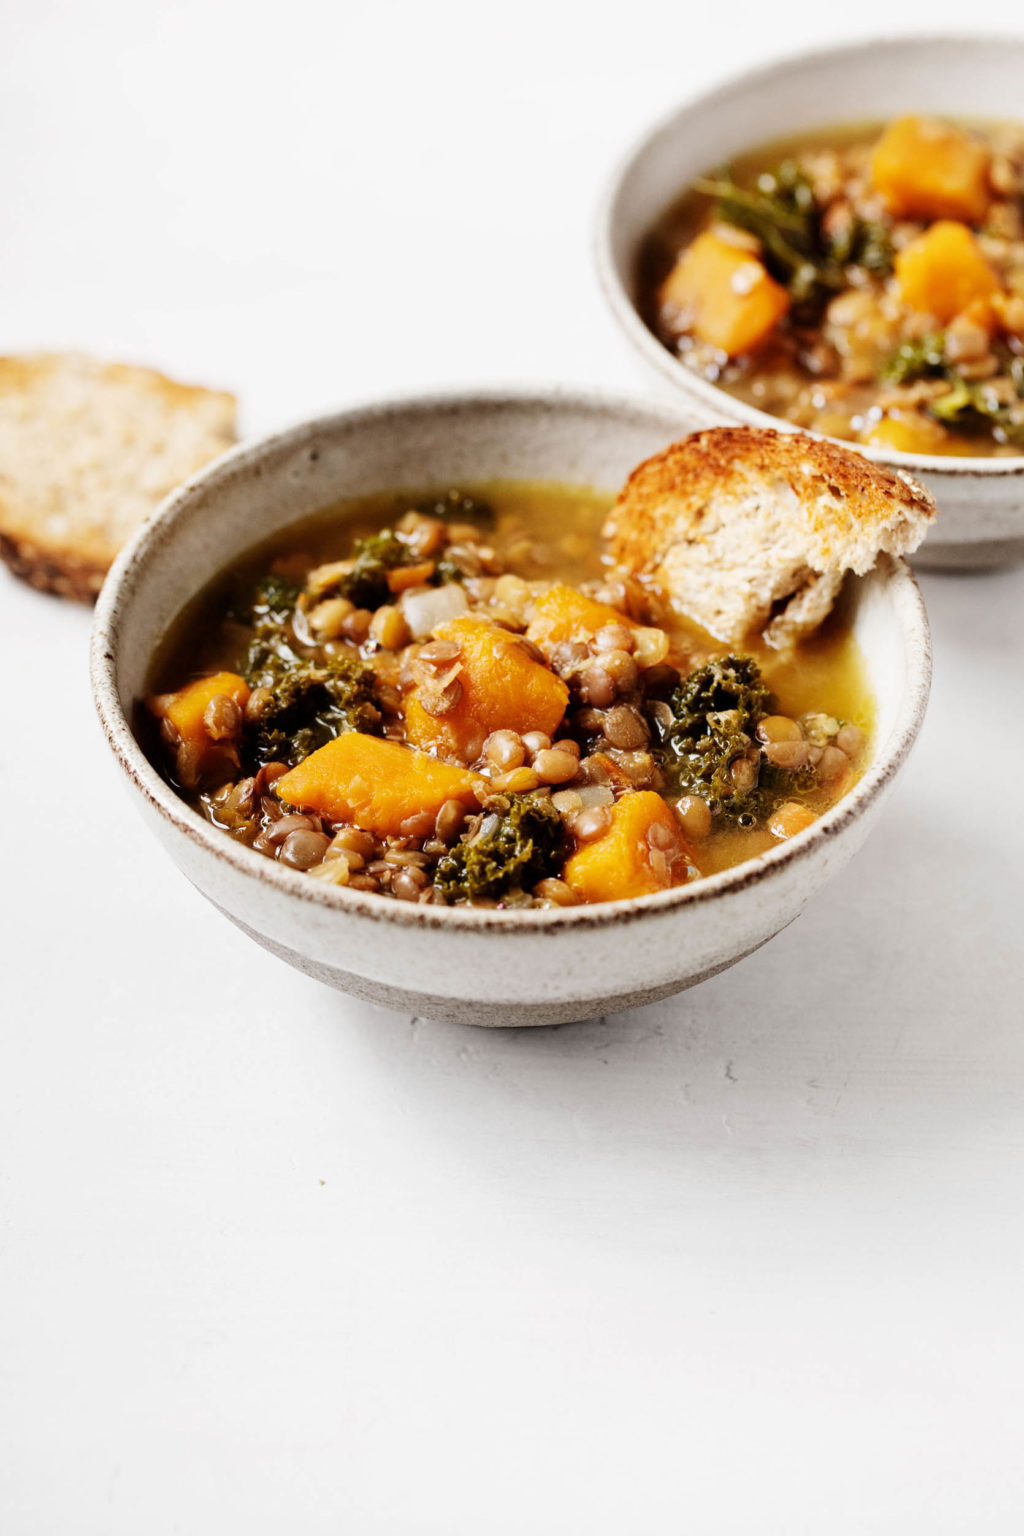 An angled photograph of two bowls of a vegan lentil, kale, and winter squash soup, which are served with toast points.